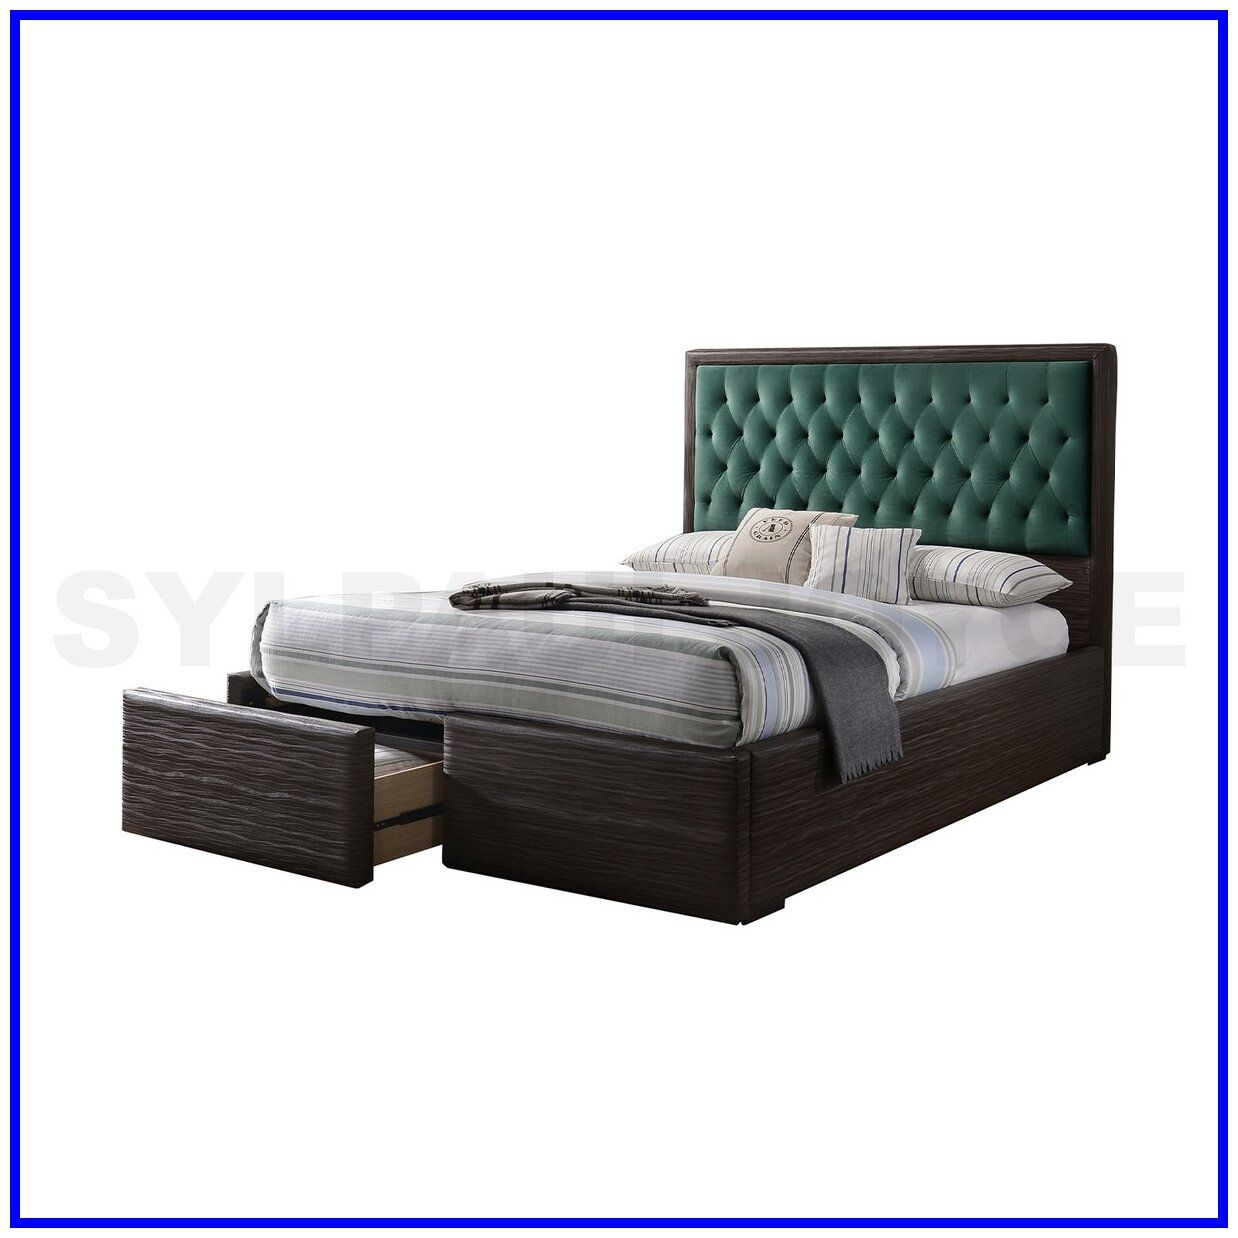 56 Reference Of Sofa Bed Queen Size Uratex In 2020 Sofa Bed Queen Sofa Bed Sofa Bed Sale